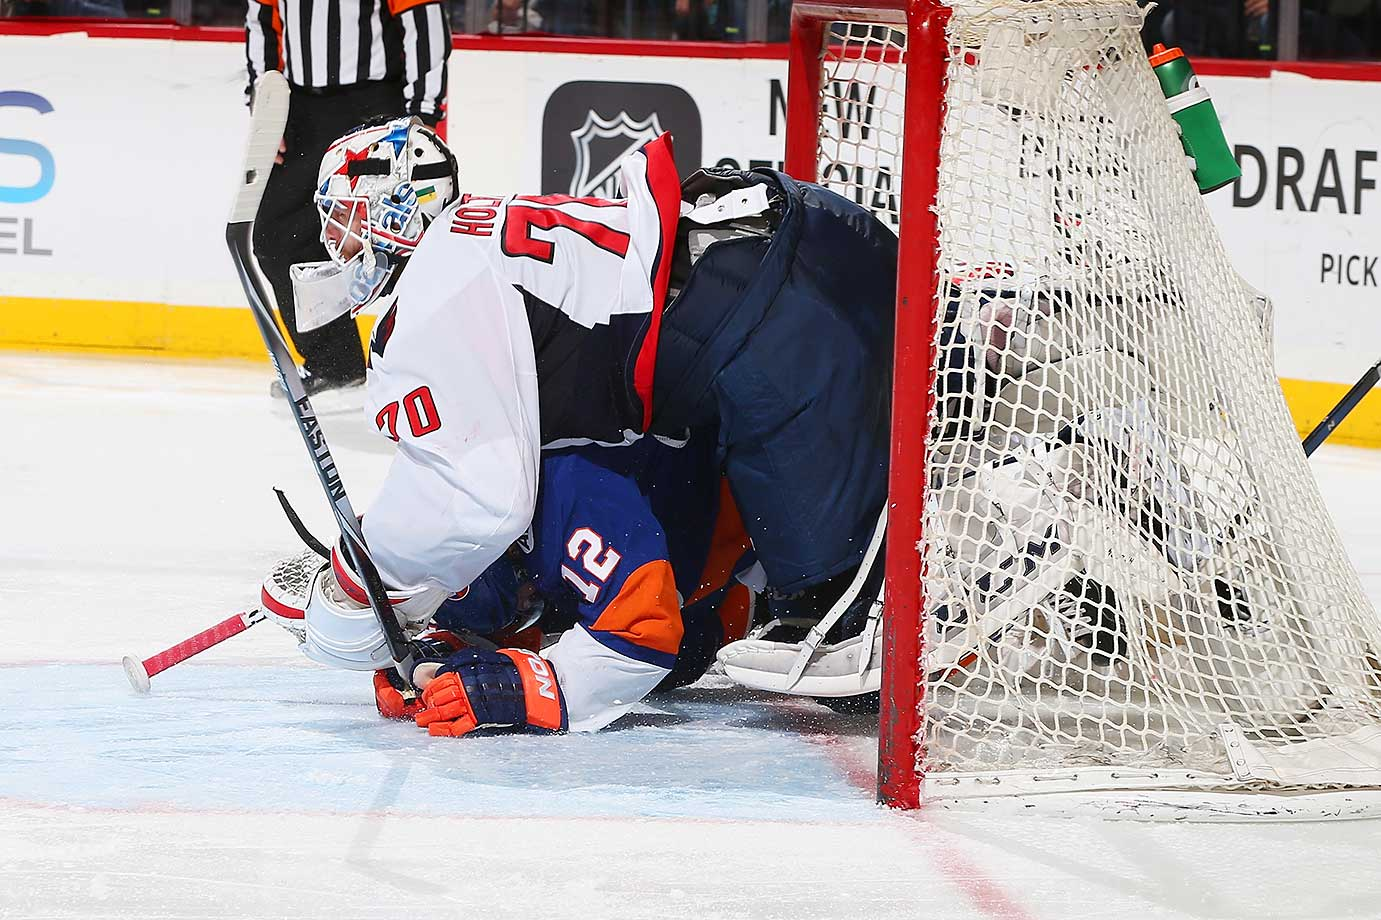 Josh Bailey of the New York Islanders collides with Braden Holtby of the Washington Capitals.